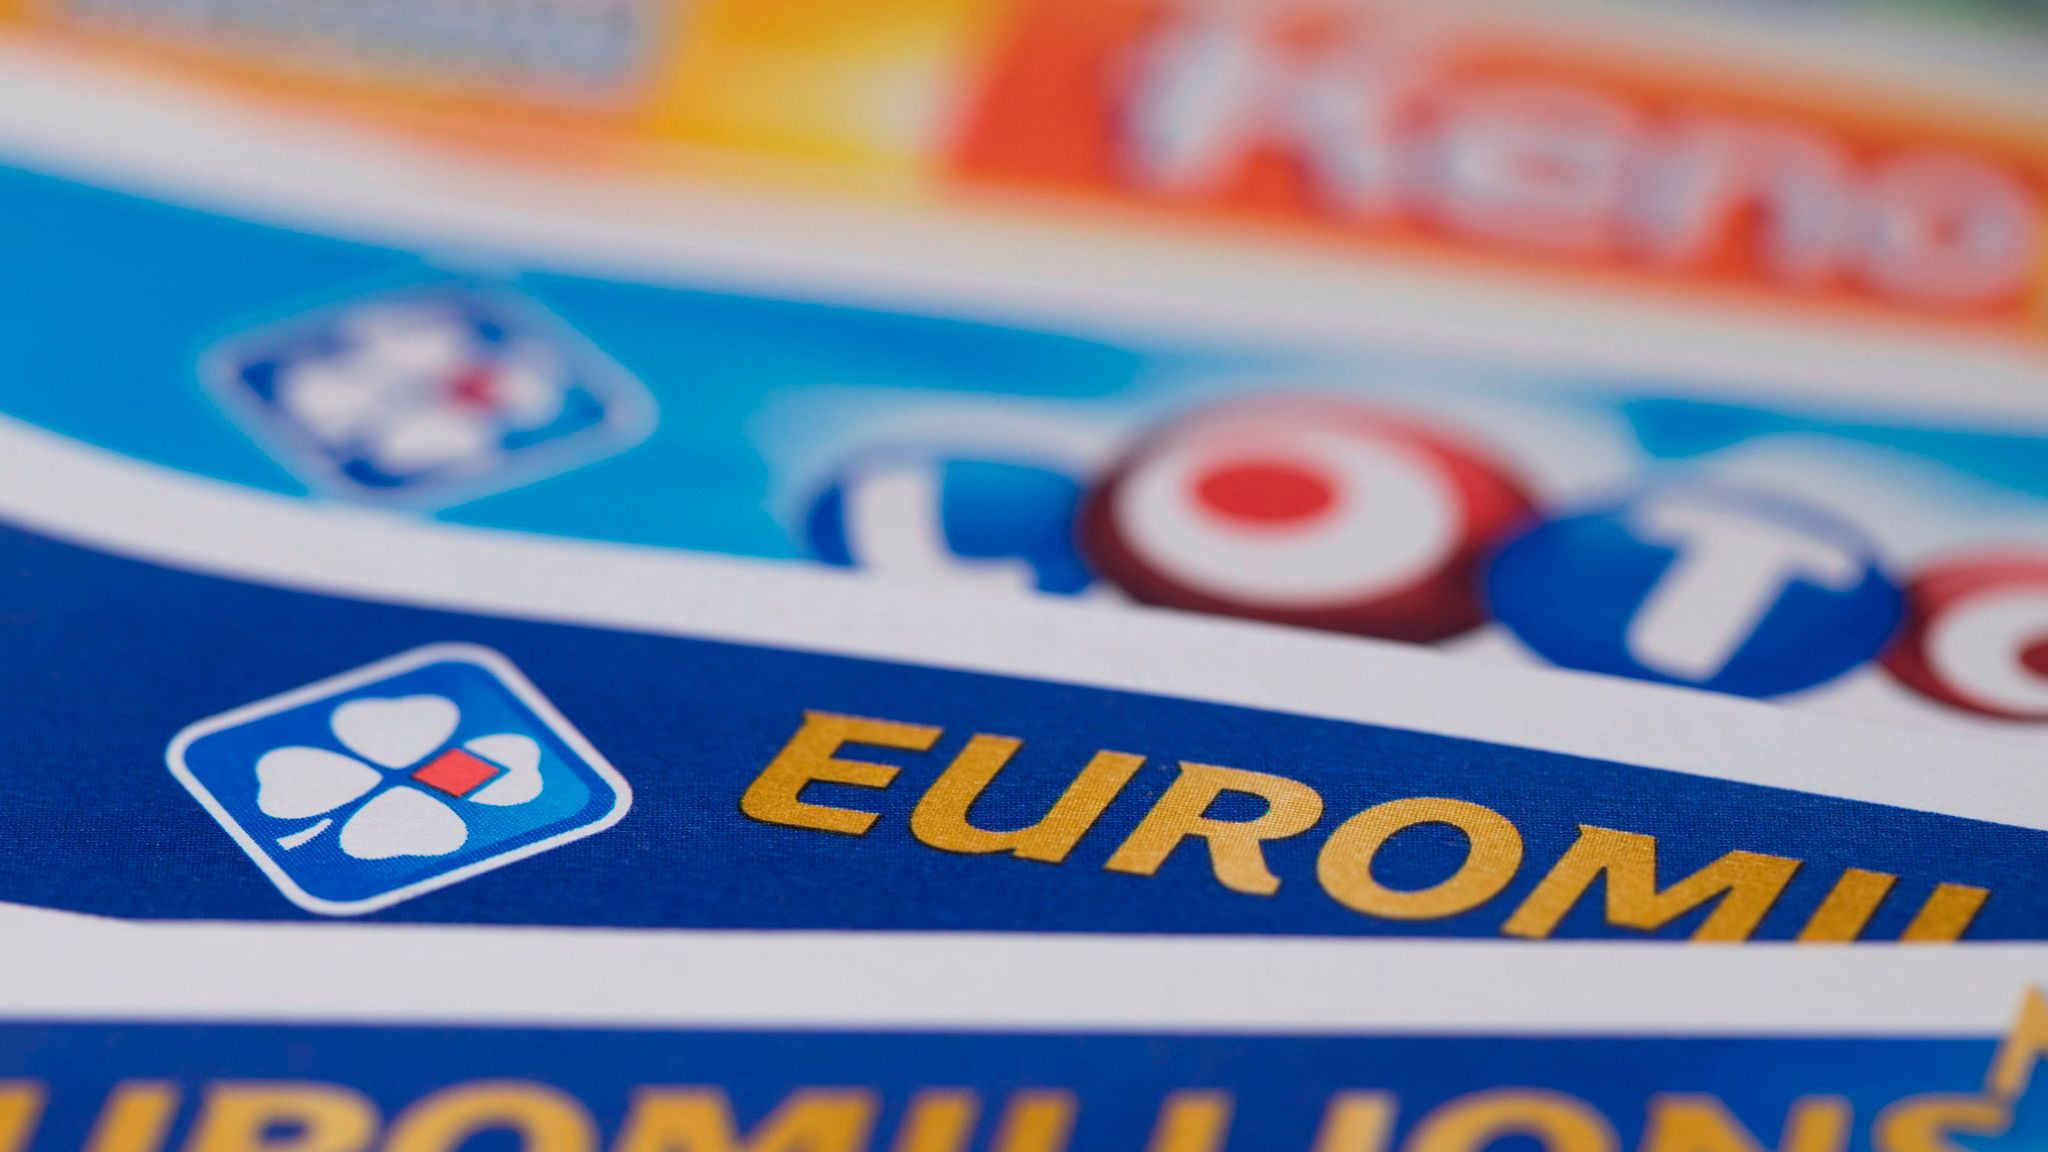 Lotto Euromillions Uk Ticket Holder Claims Entire 121 3m Euromillions Jackpot Uk